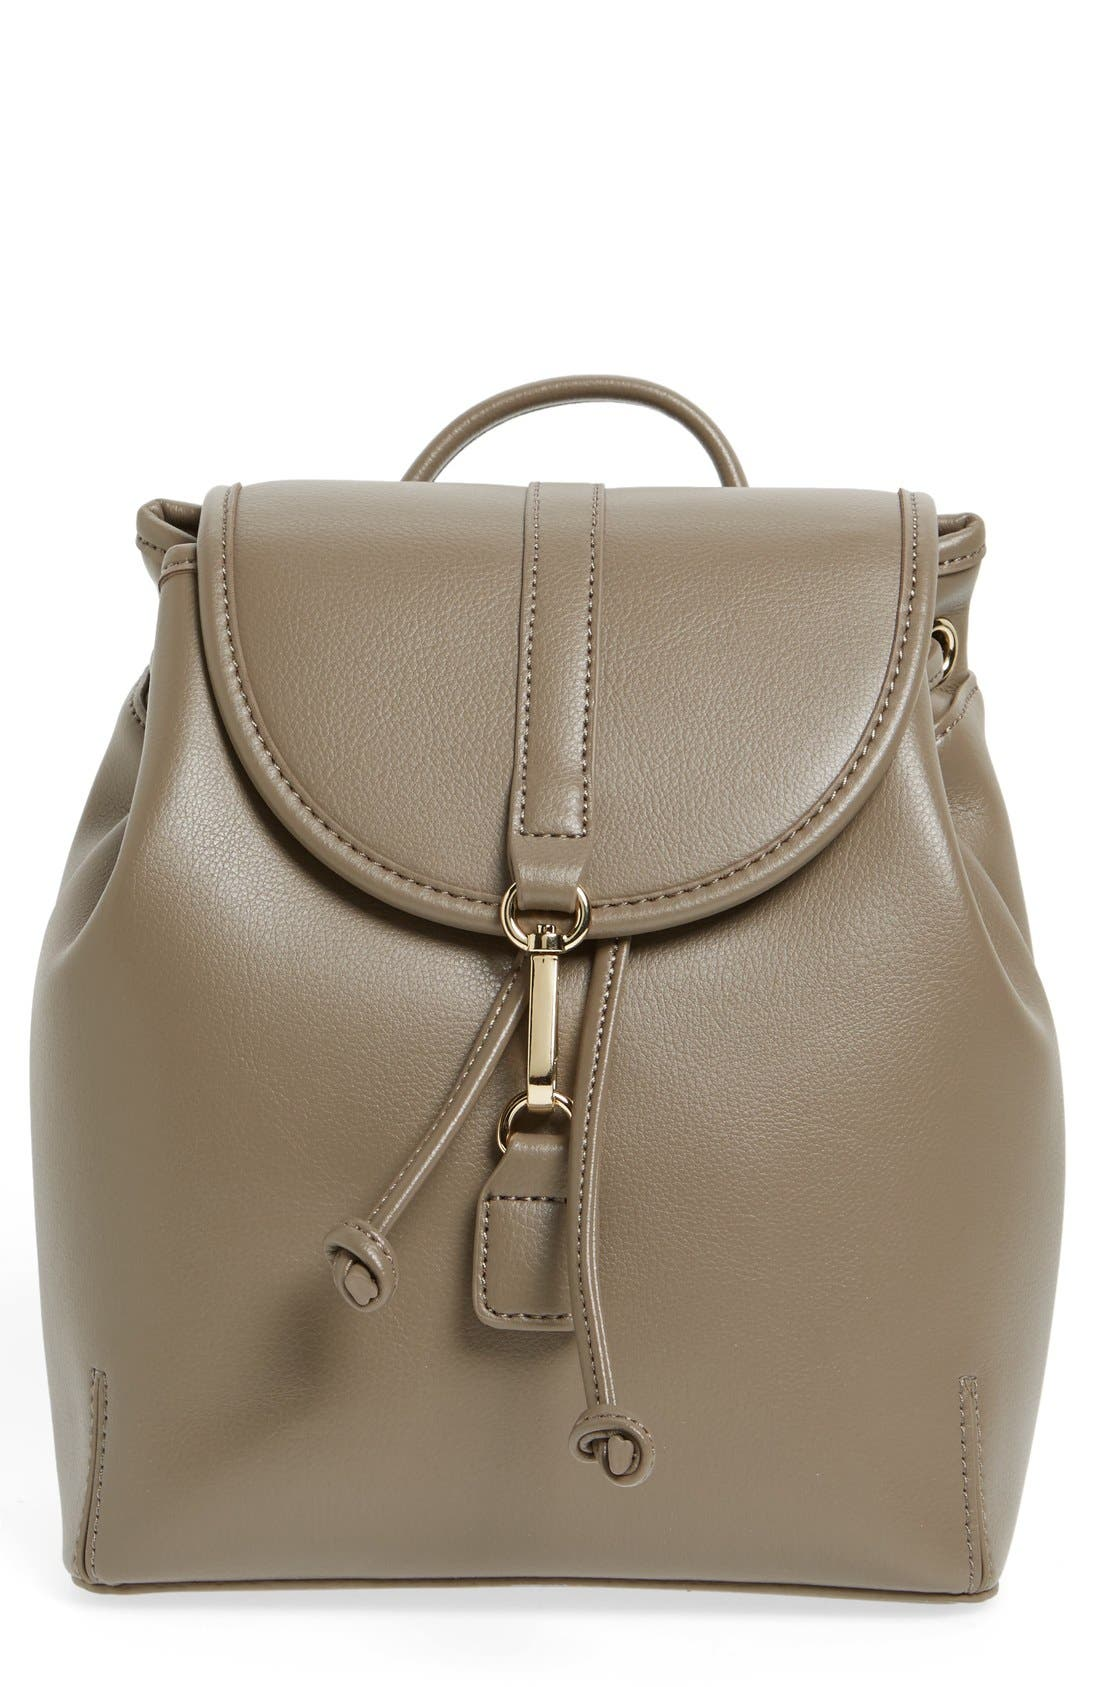 SOLE SOCIETY 'Kylie' Backpack, Main, color, 020